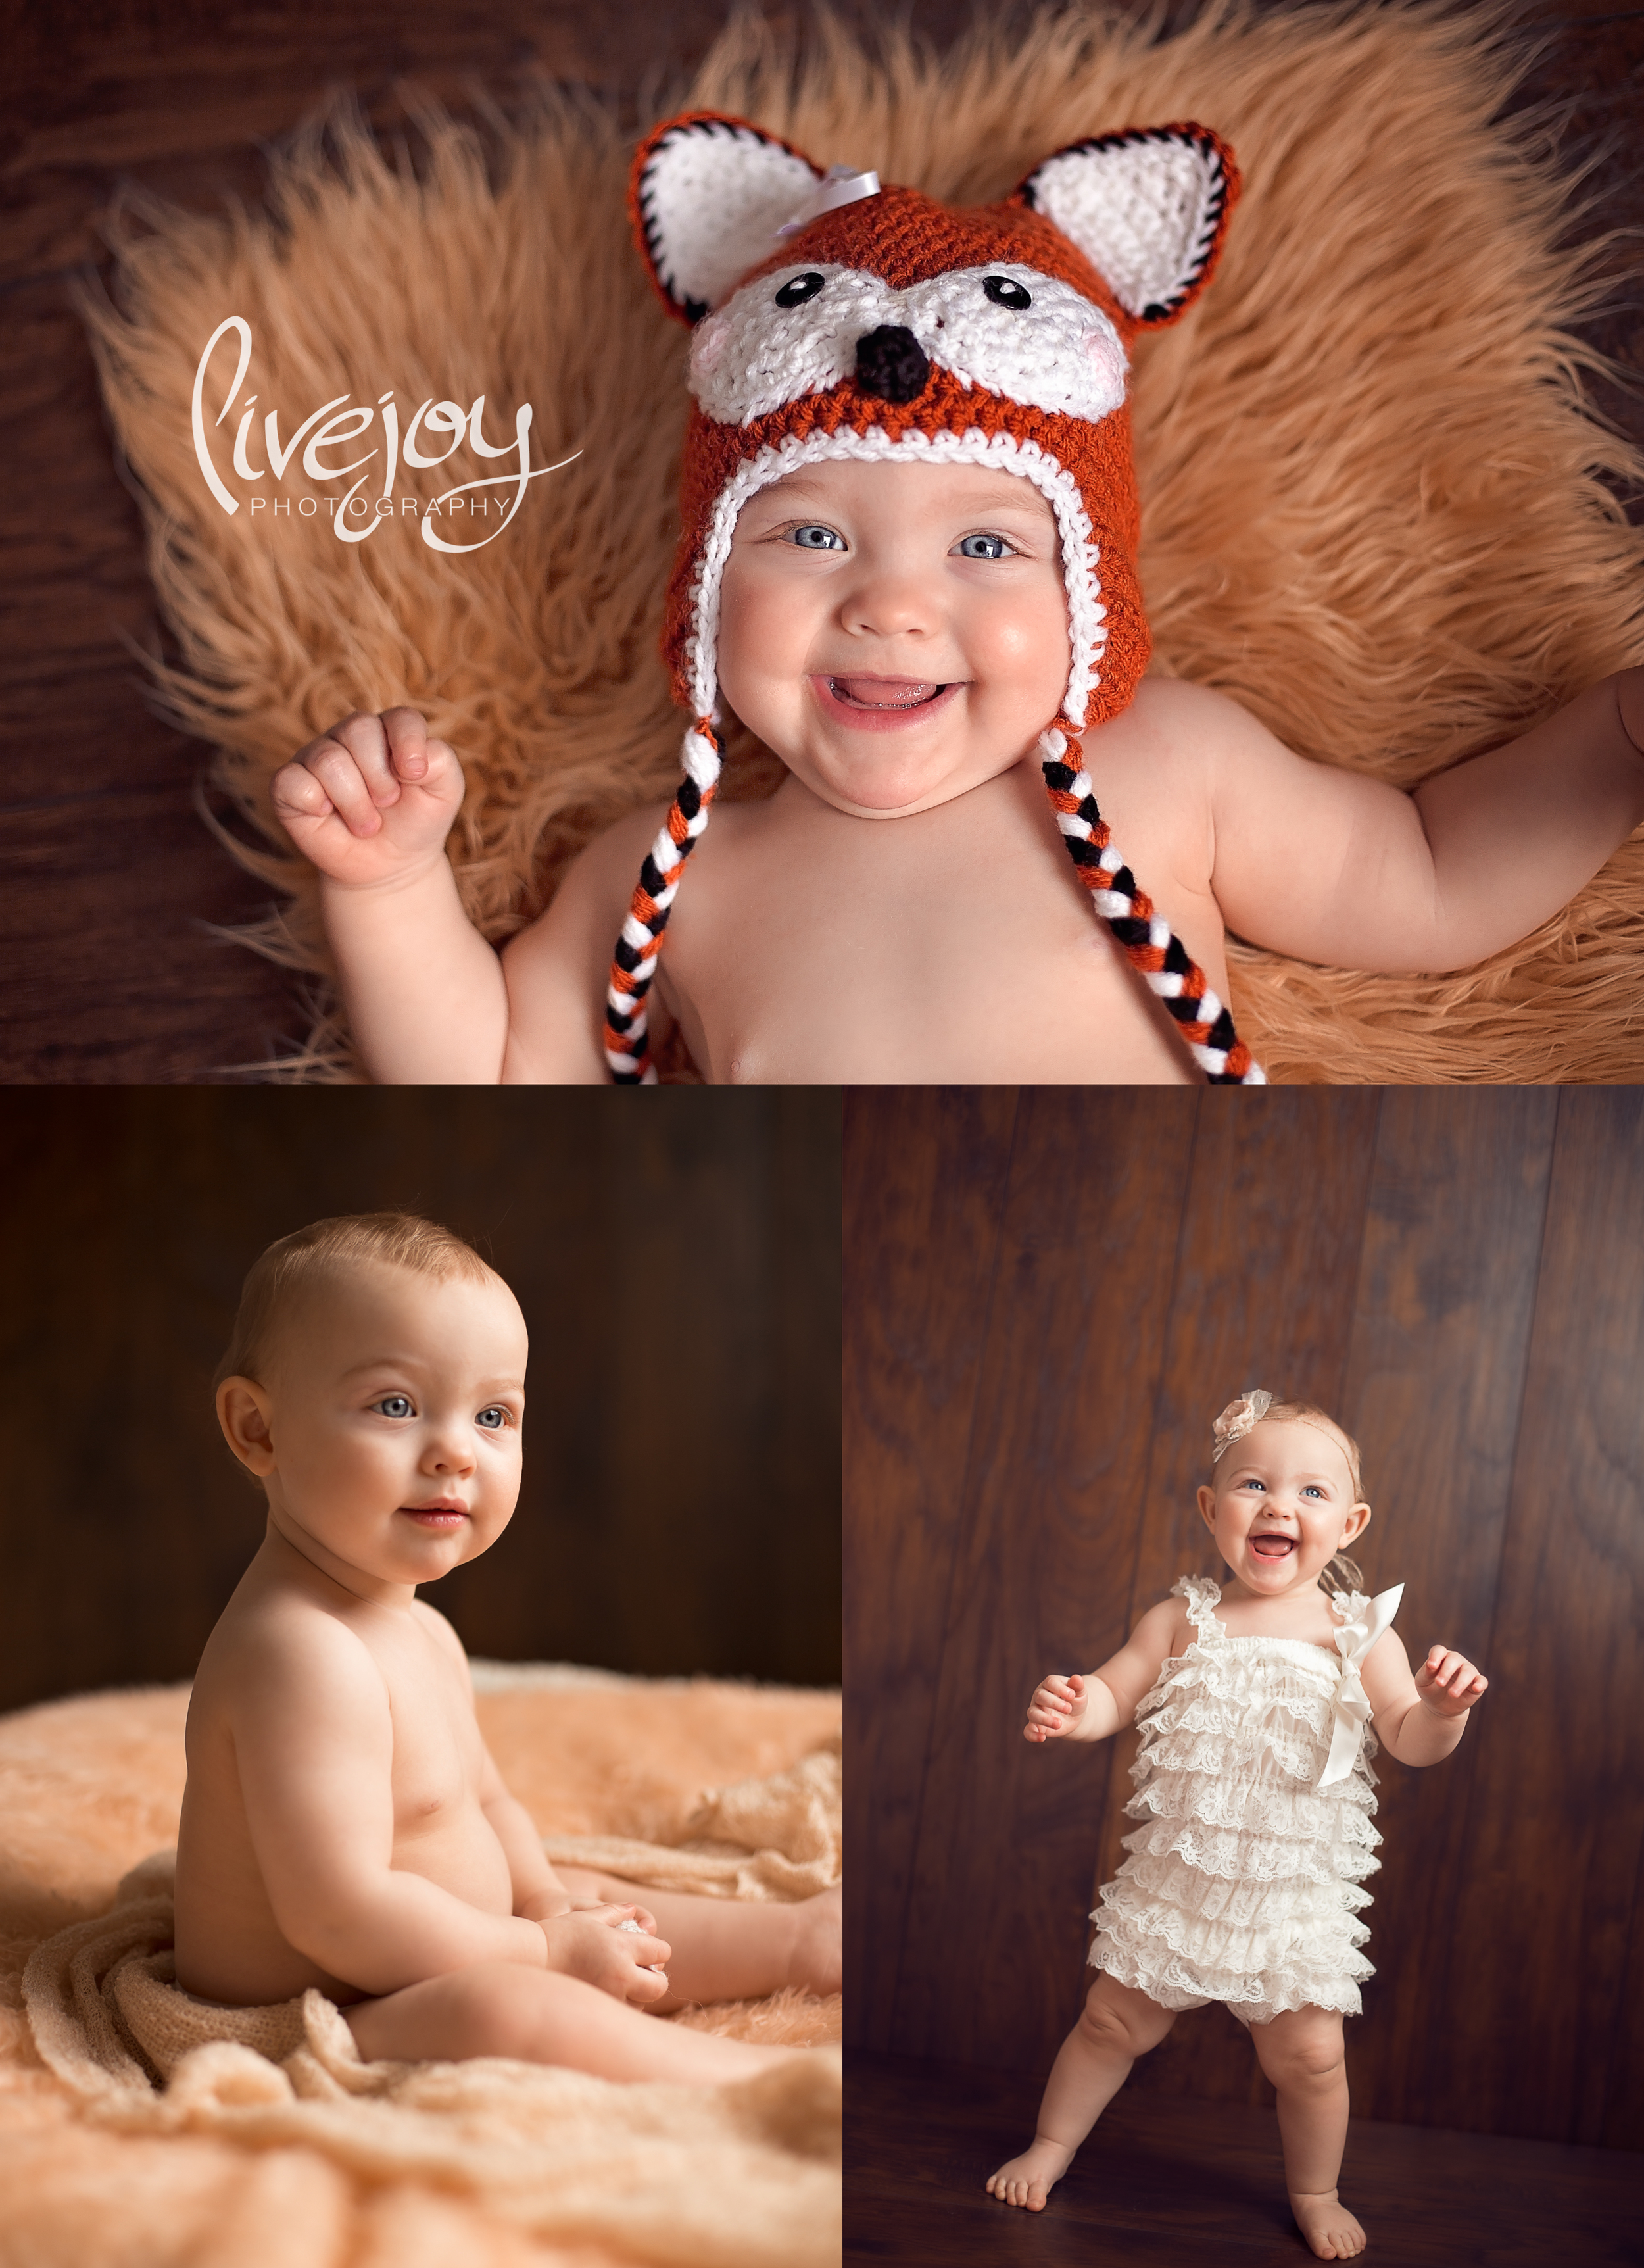 9 Months Baby Photography | Oregon | LiveJoy Photography